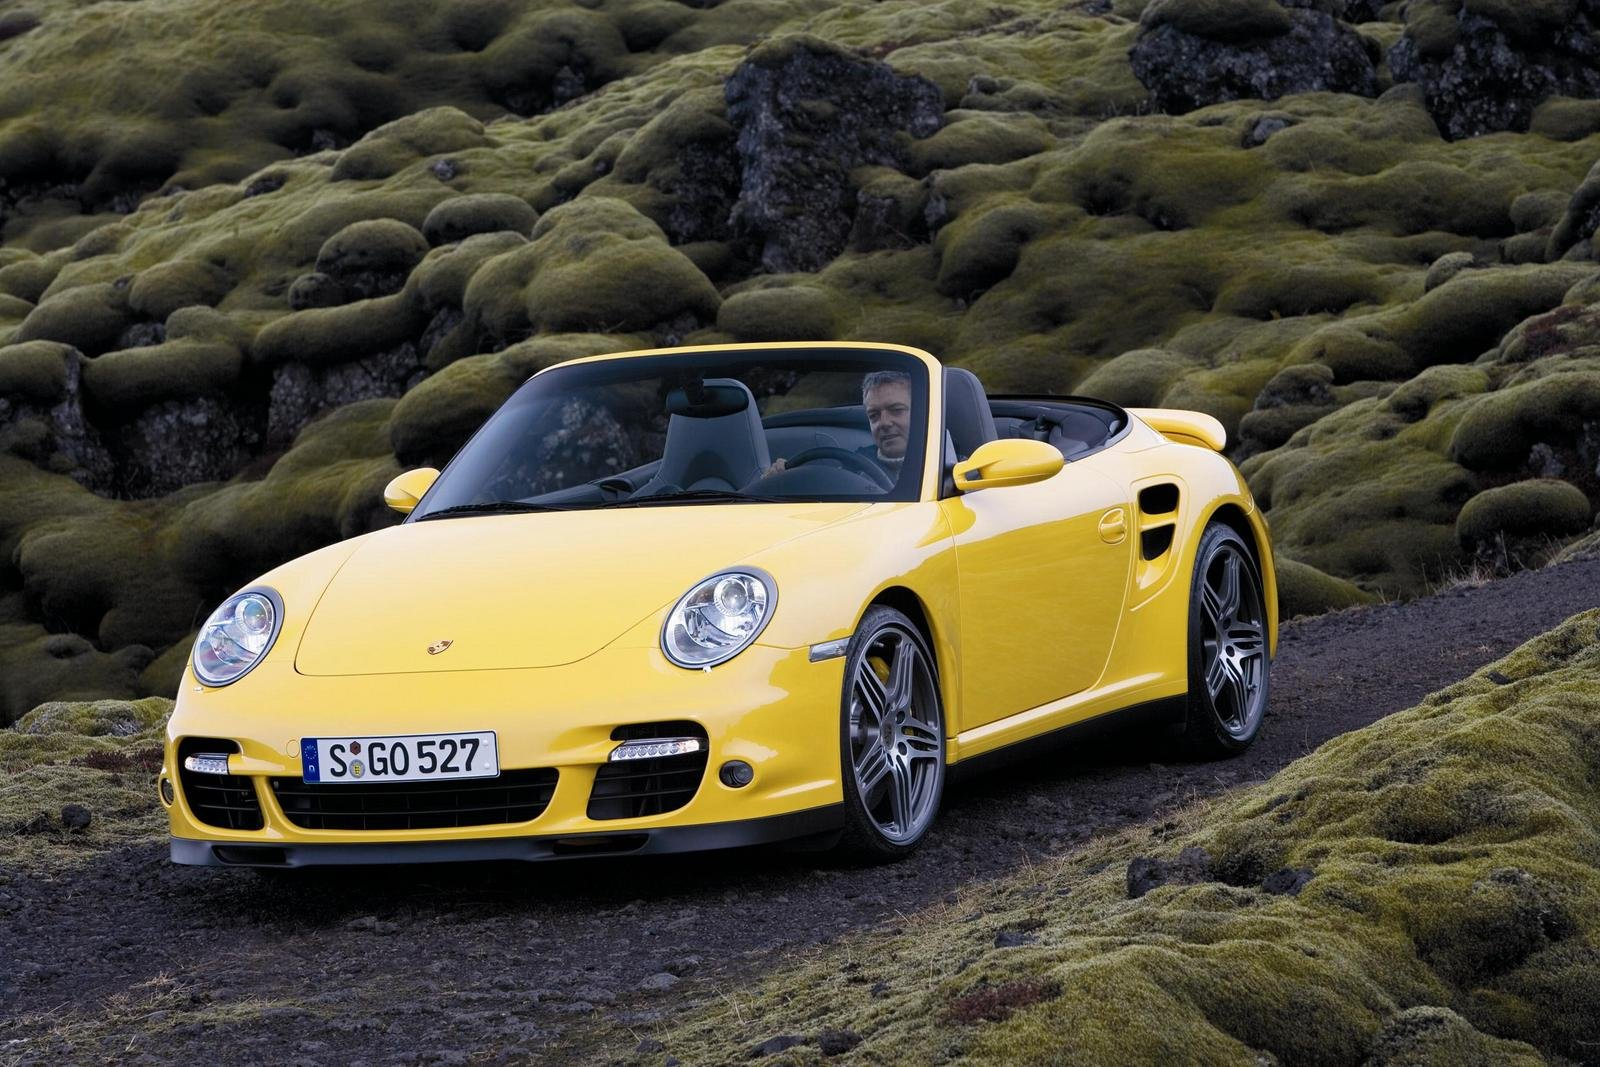 2008 porsche 911 turbo cabriolet picture 167668 car review top speed. Black Bedroom Furniture Sets. Home Design Ideas